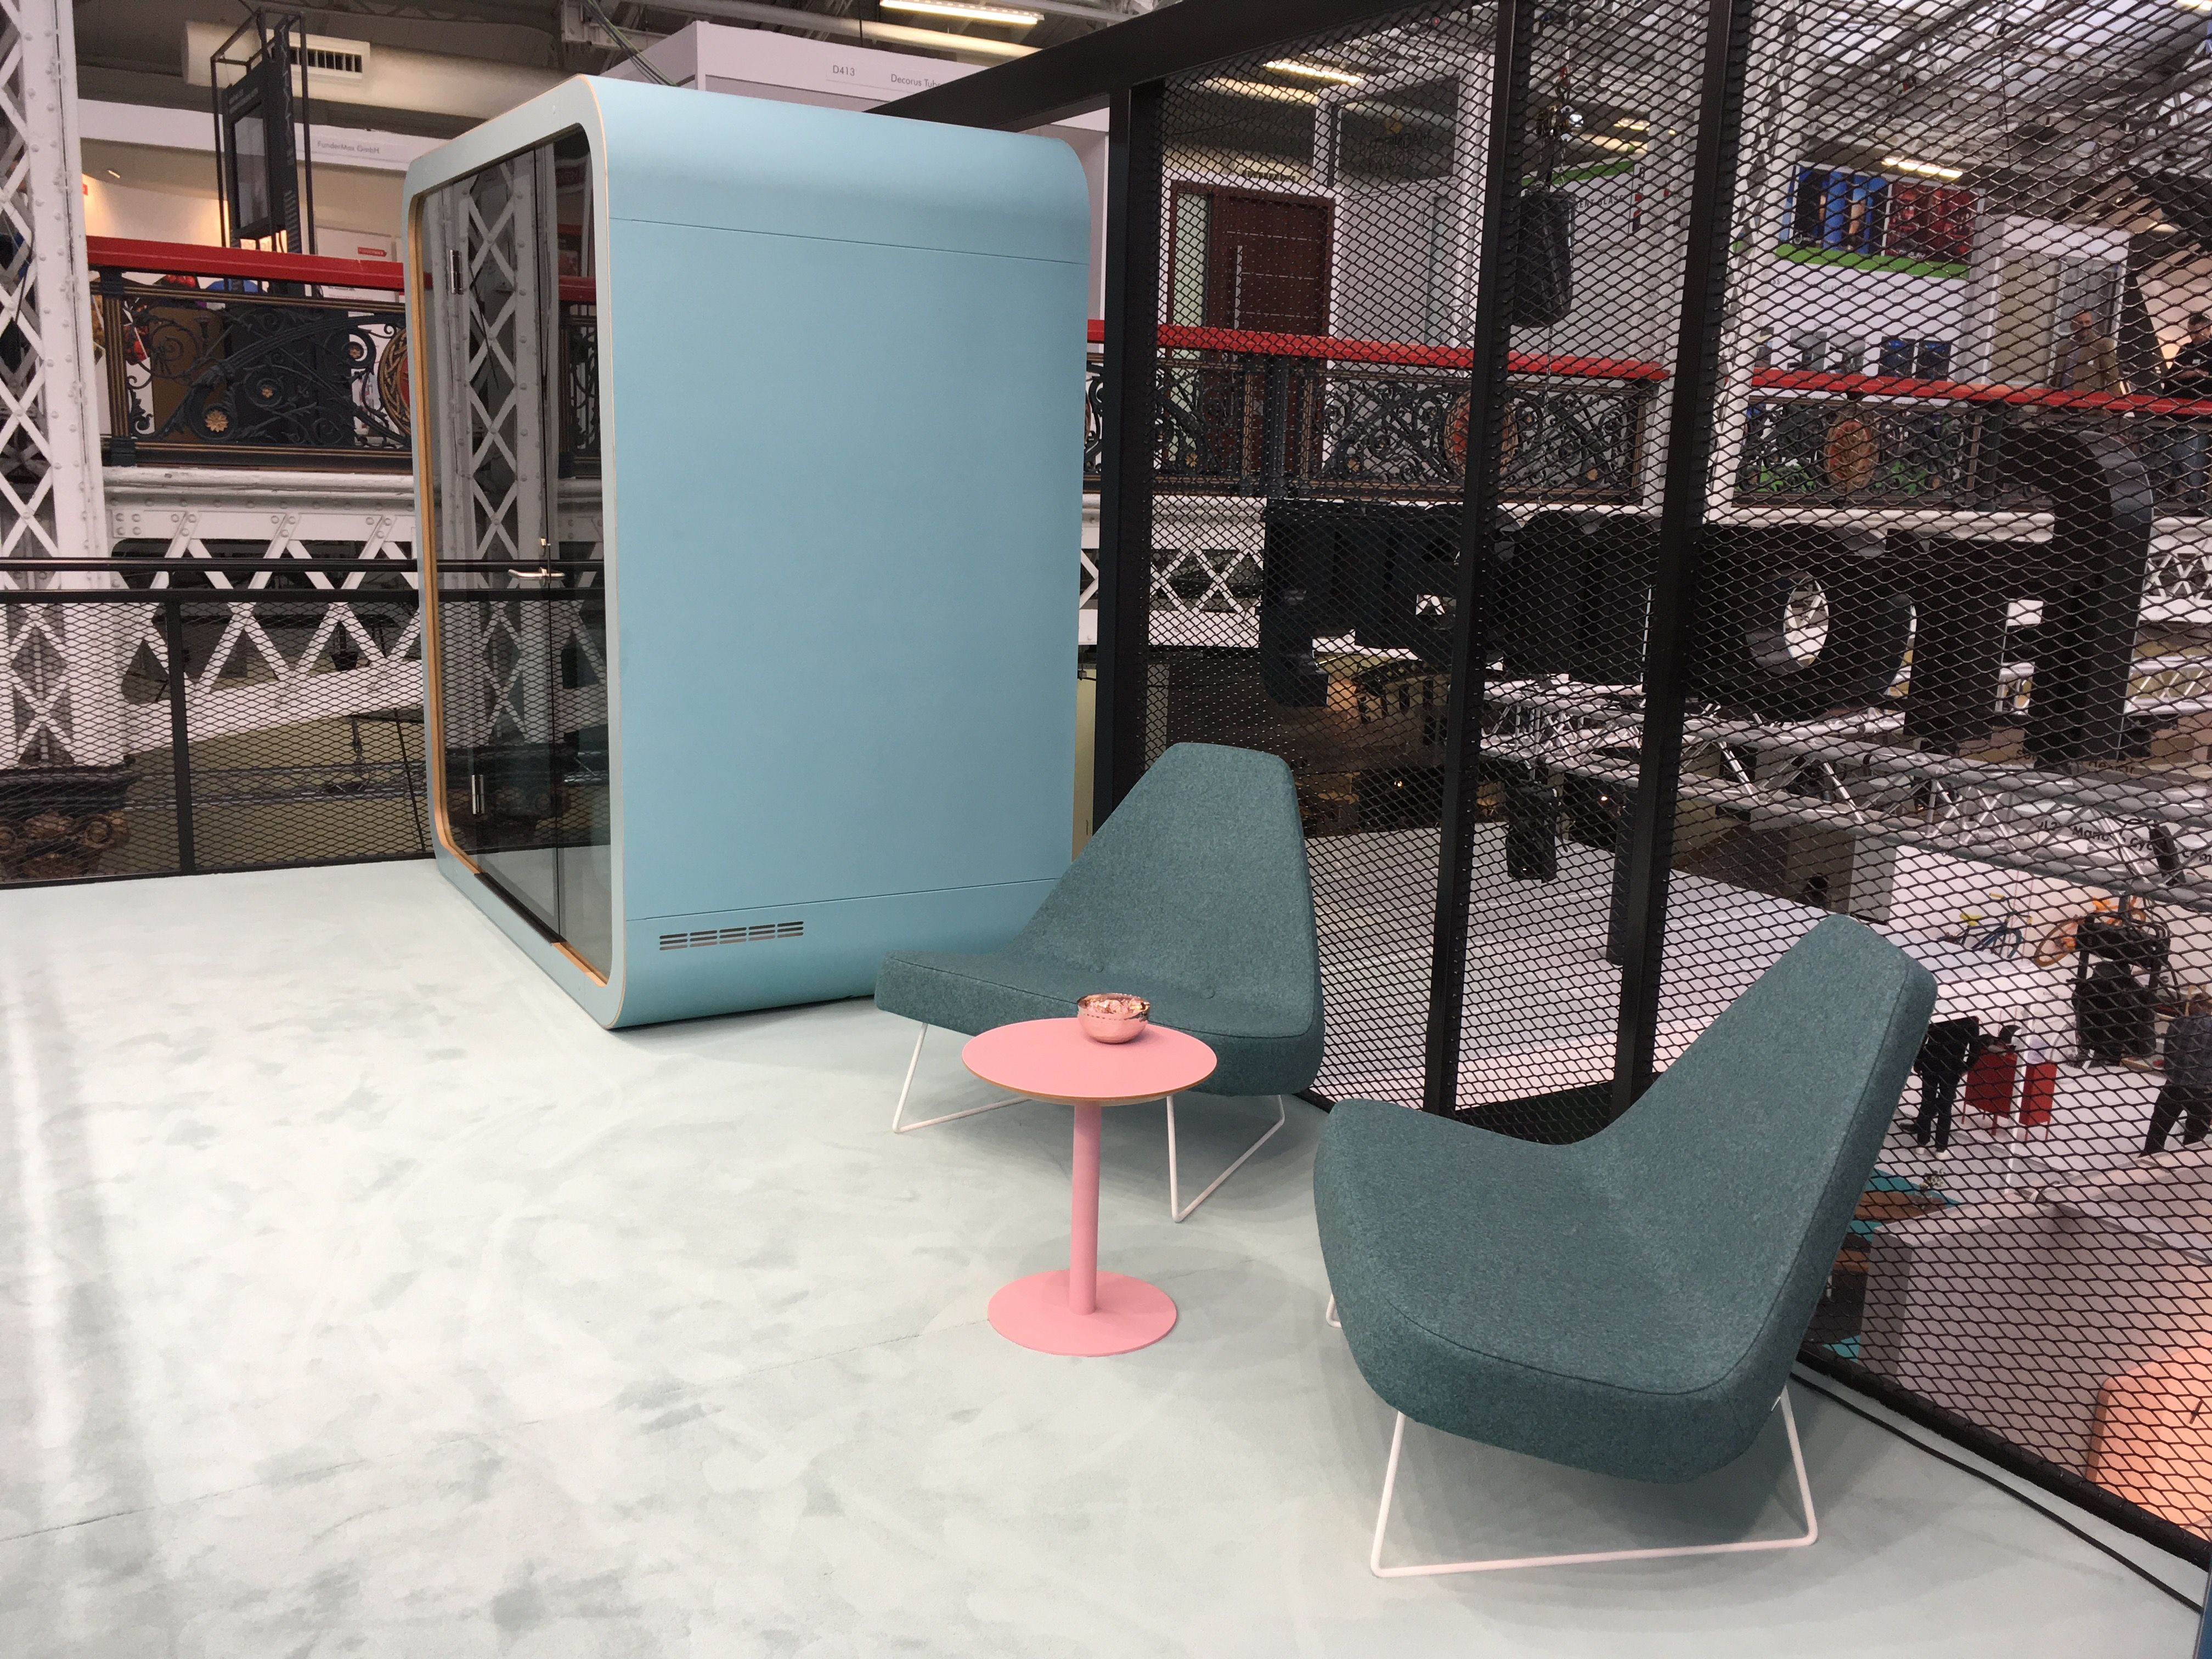 100 percent design 2017 at london design festival creating happy 100 percent design 2017 at london design festival creating happy offices sound proof acoustic malvernweather Choice Image